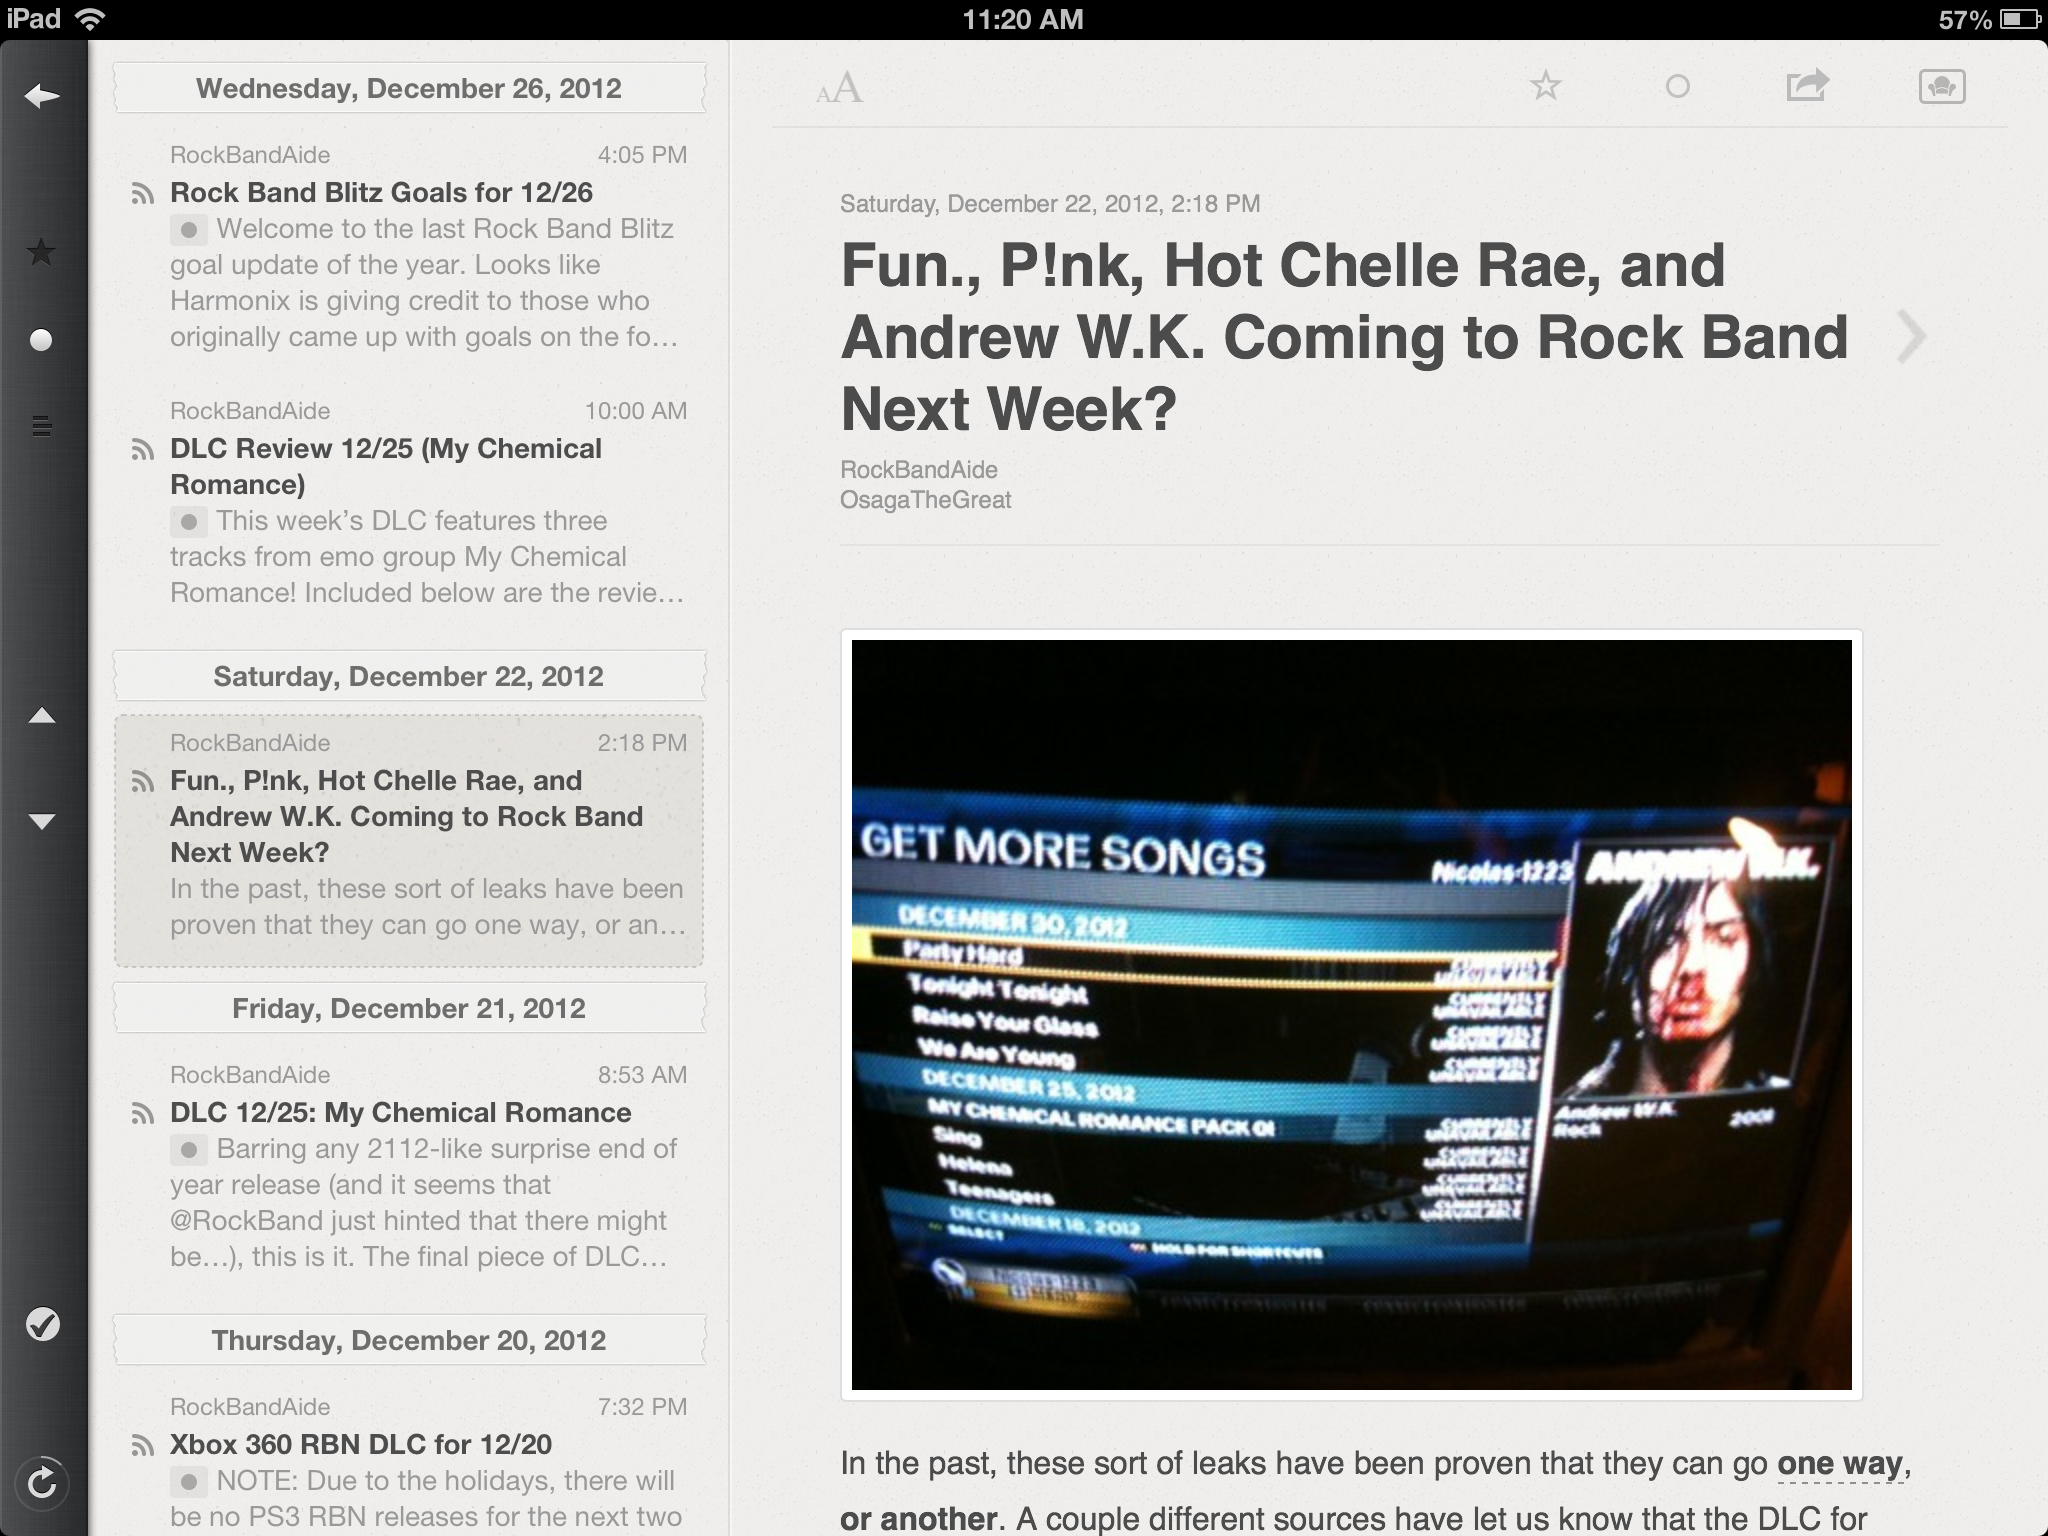 Reeder is great for a more traditional approach to reading RSS feeds.